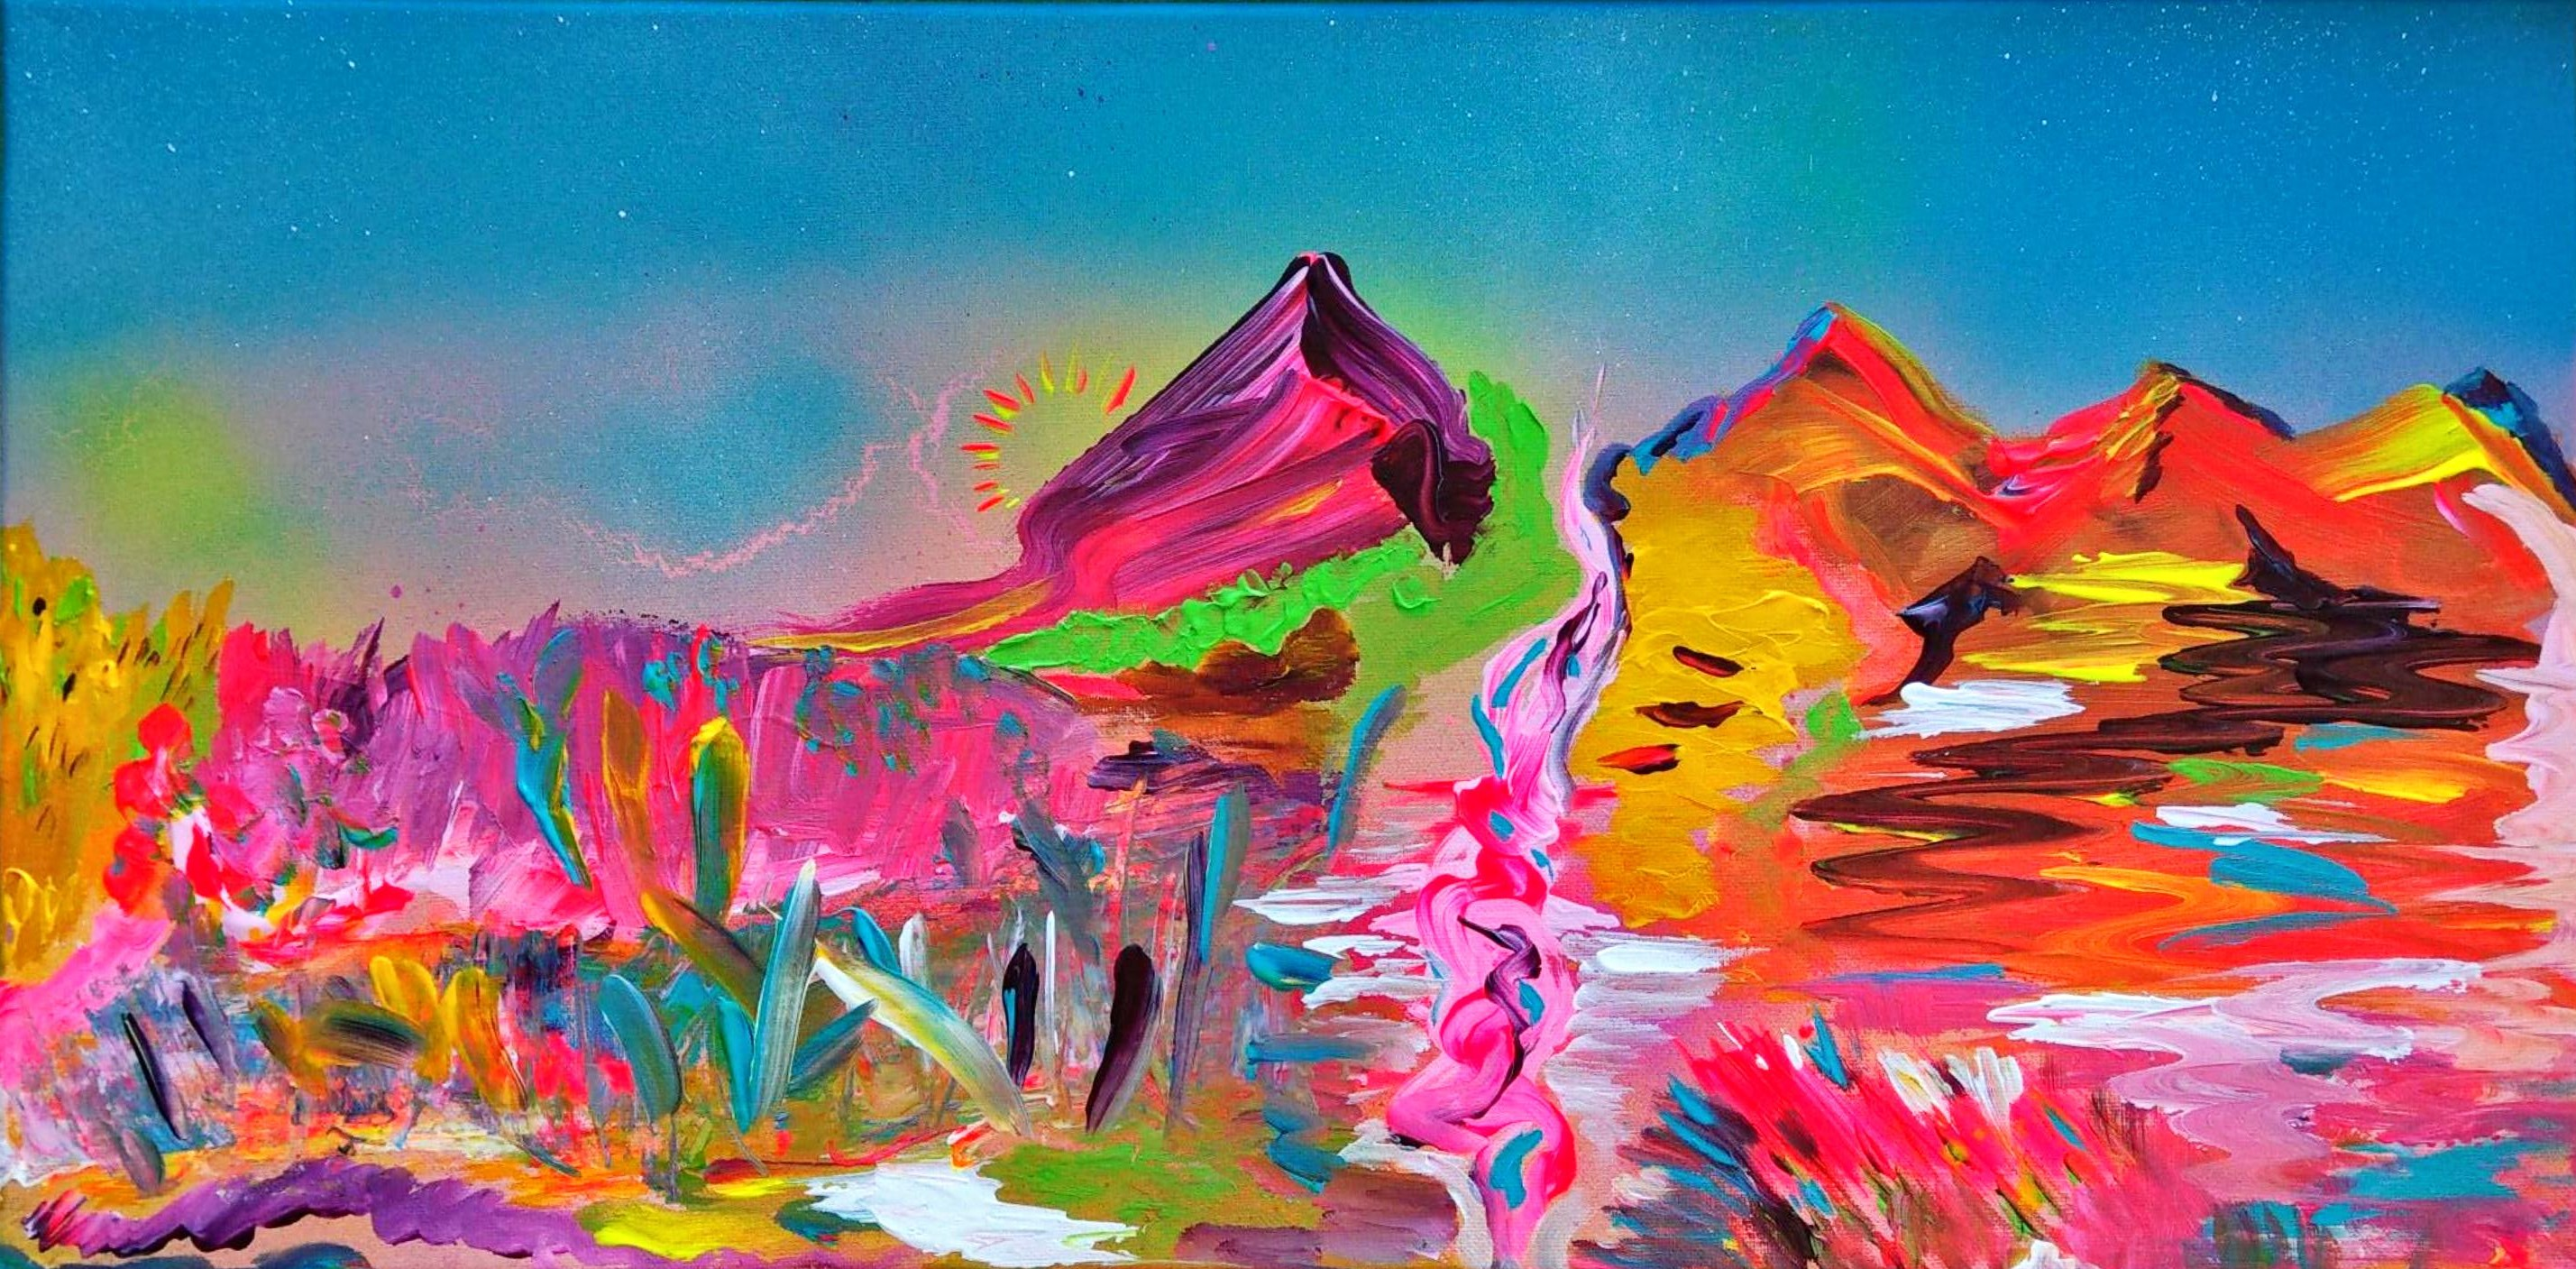 Bild MAGIC MOUNTAIN Acrylmalerei auf Leinwand Seele Michael Lubomirski